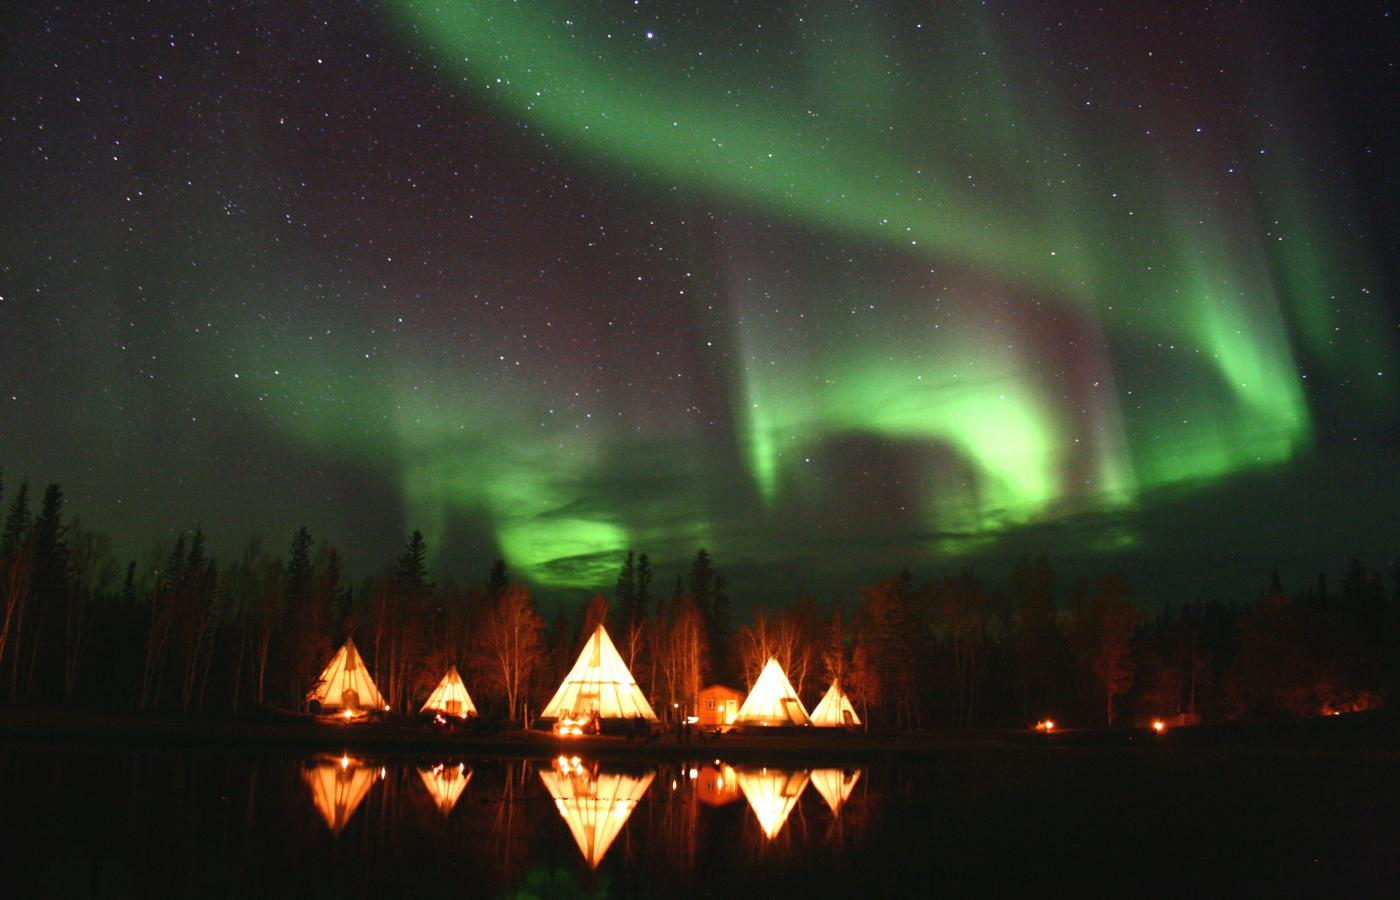 The Northern Lights fill the sky over Aurora Village and lit teepees.